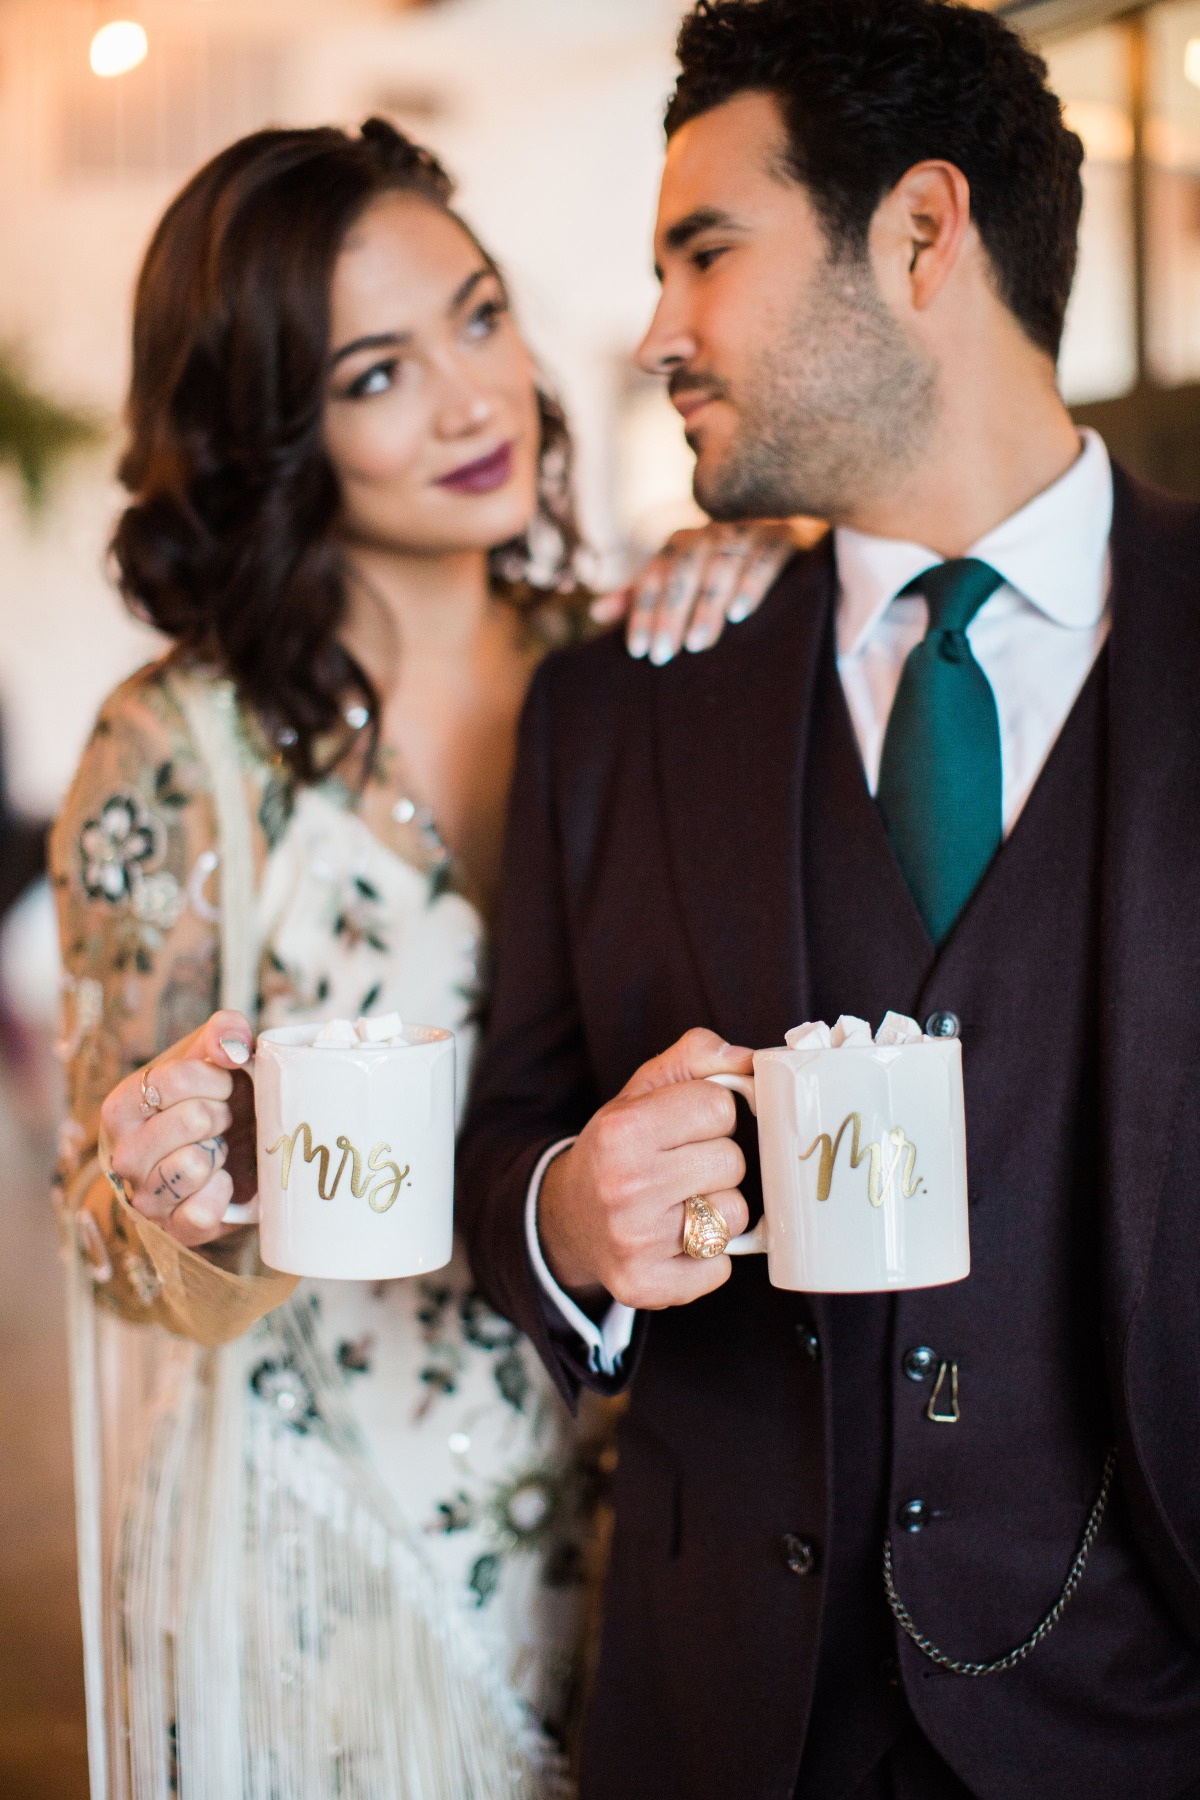 Mr and Mrs coffee cups for hot cocoa